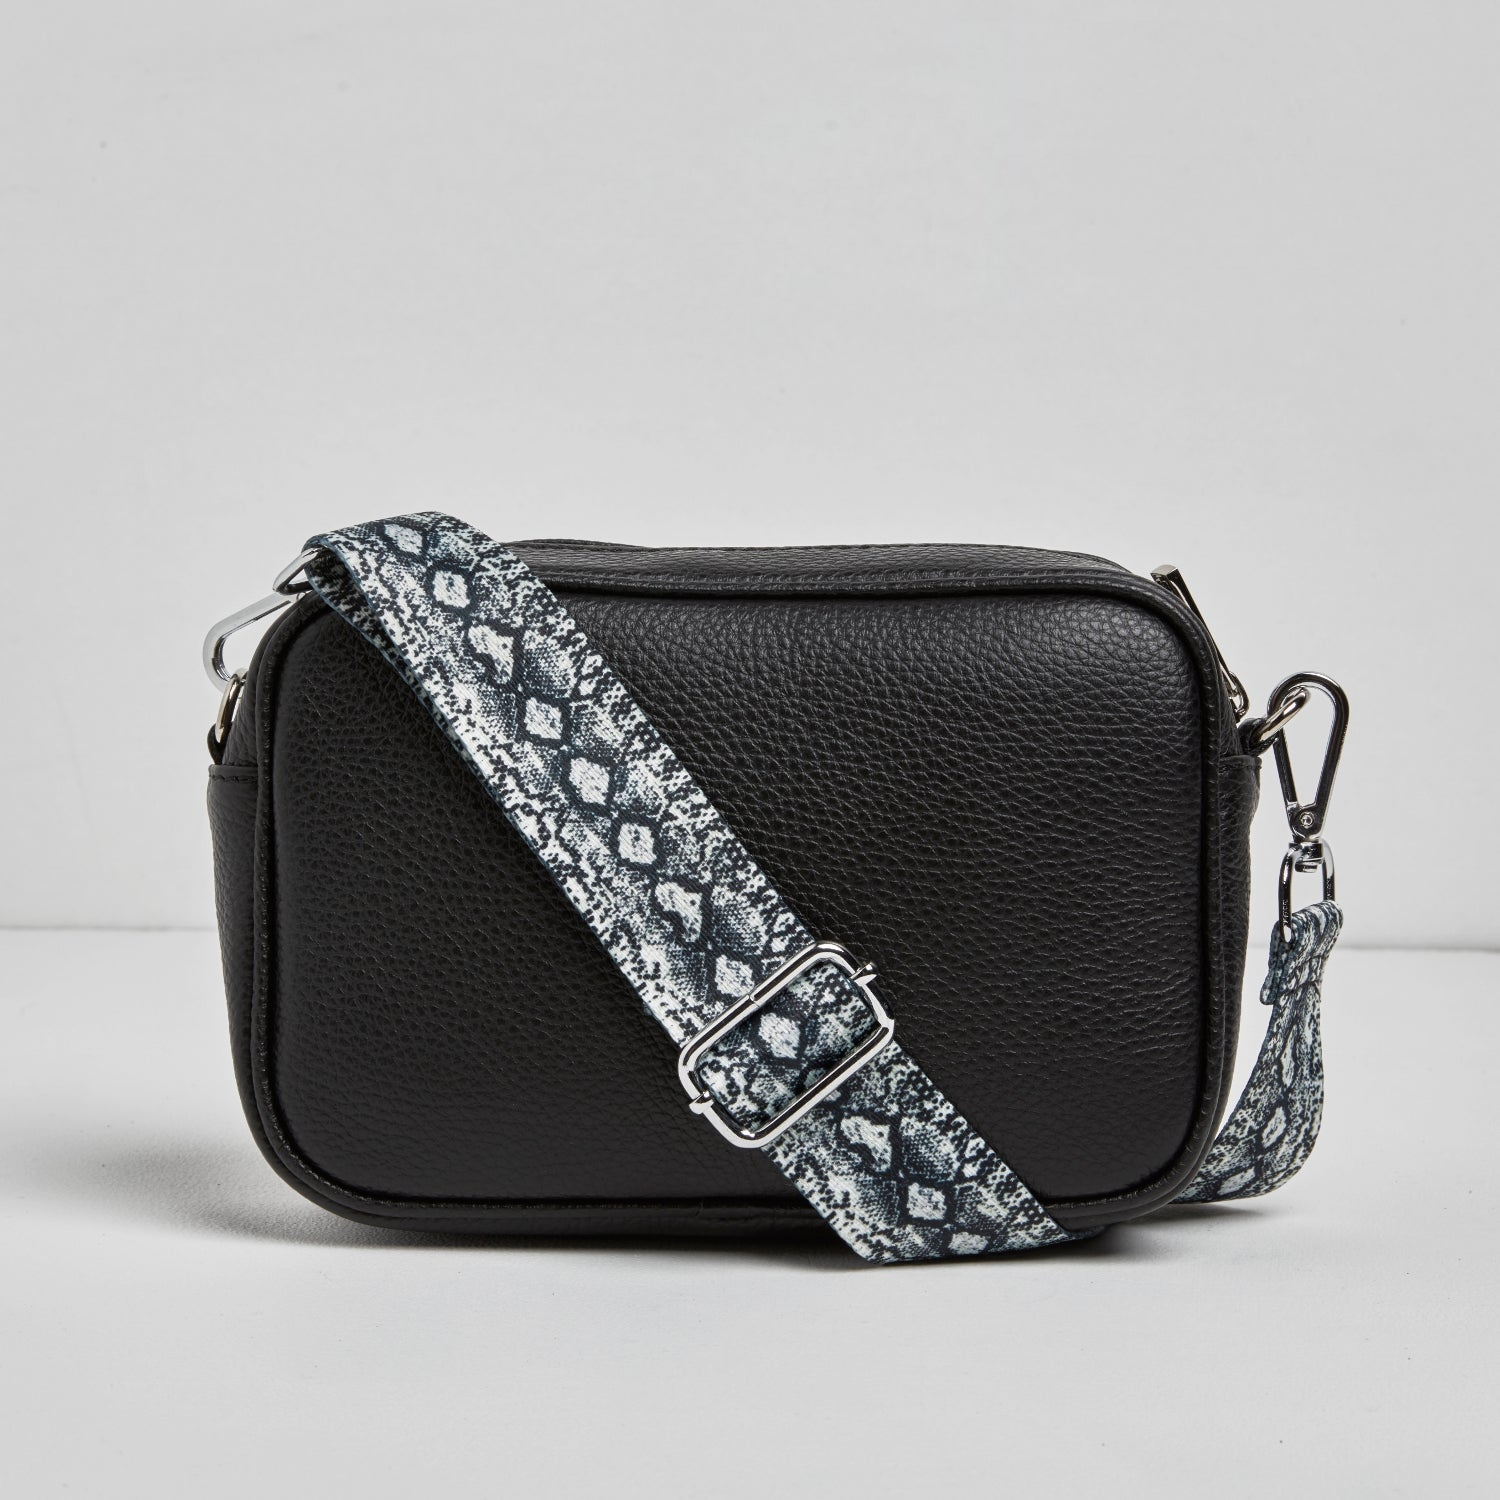 Florence - Crossbody Bag in Black with Snake Strap